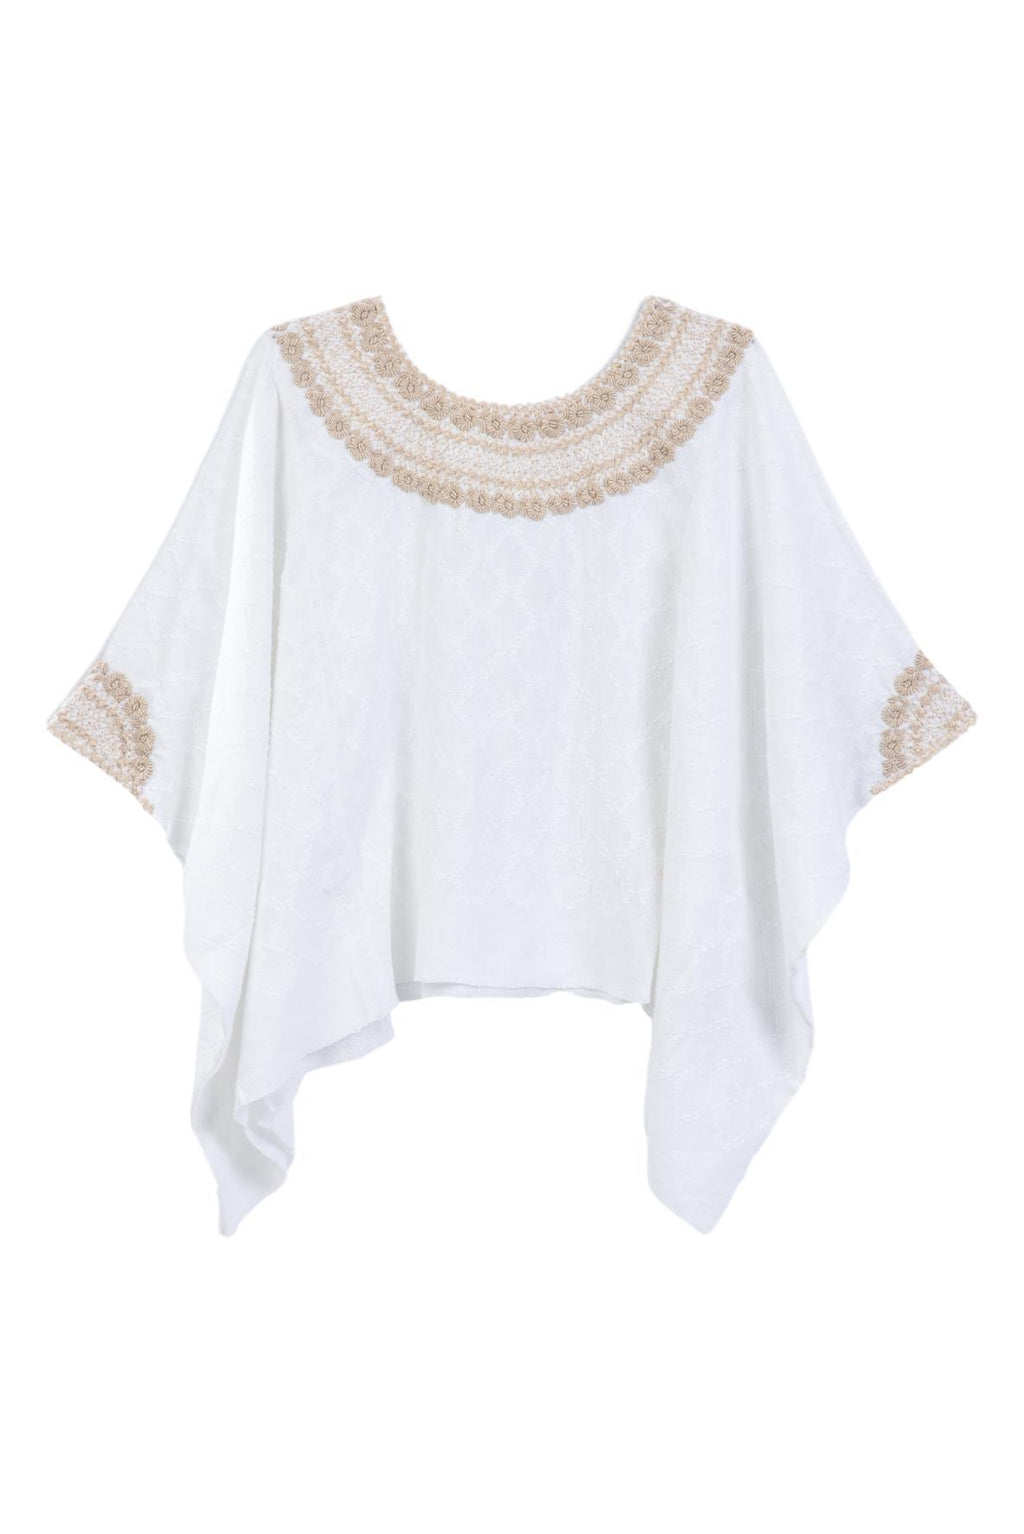 hand woven and embroidered white tunic blouse